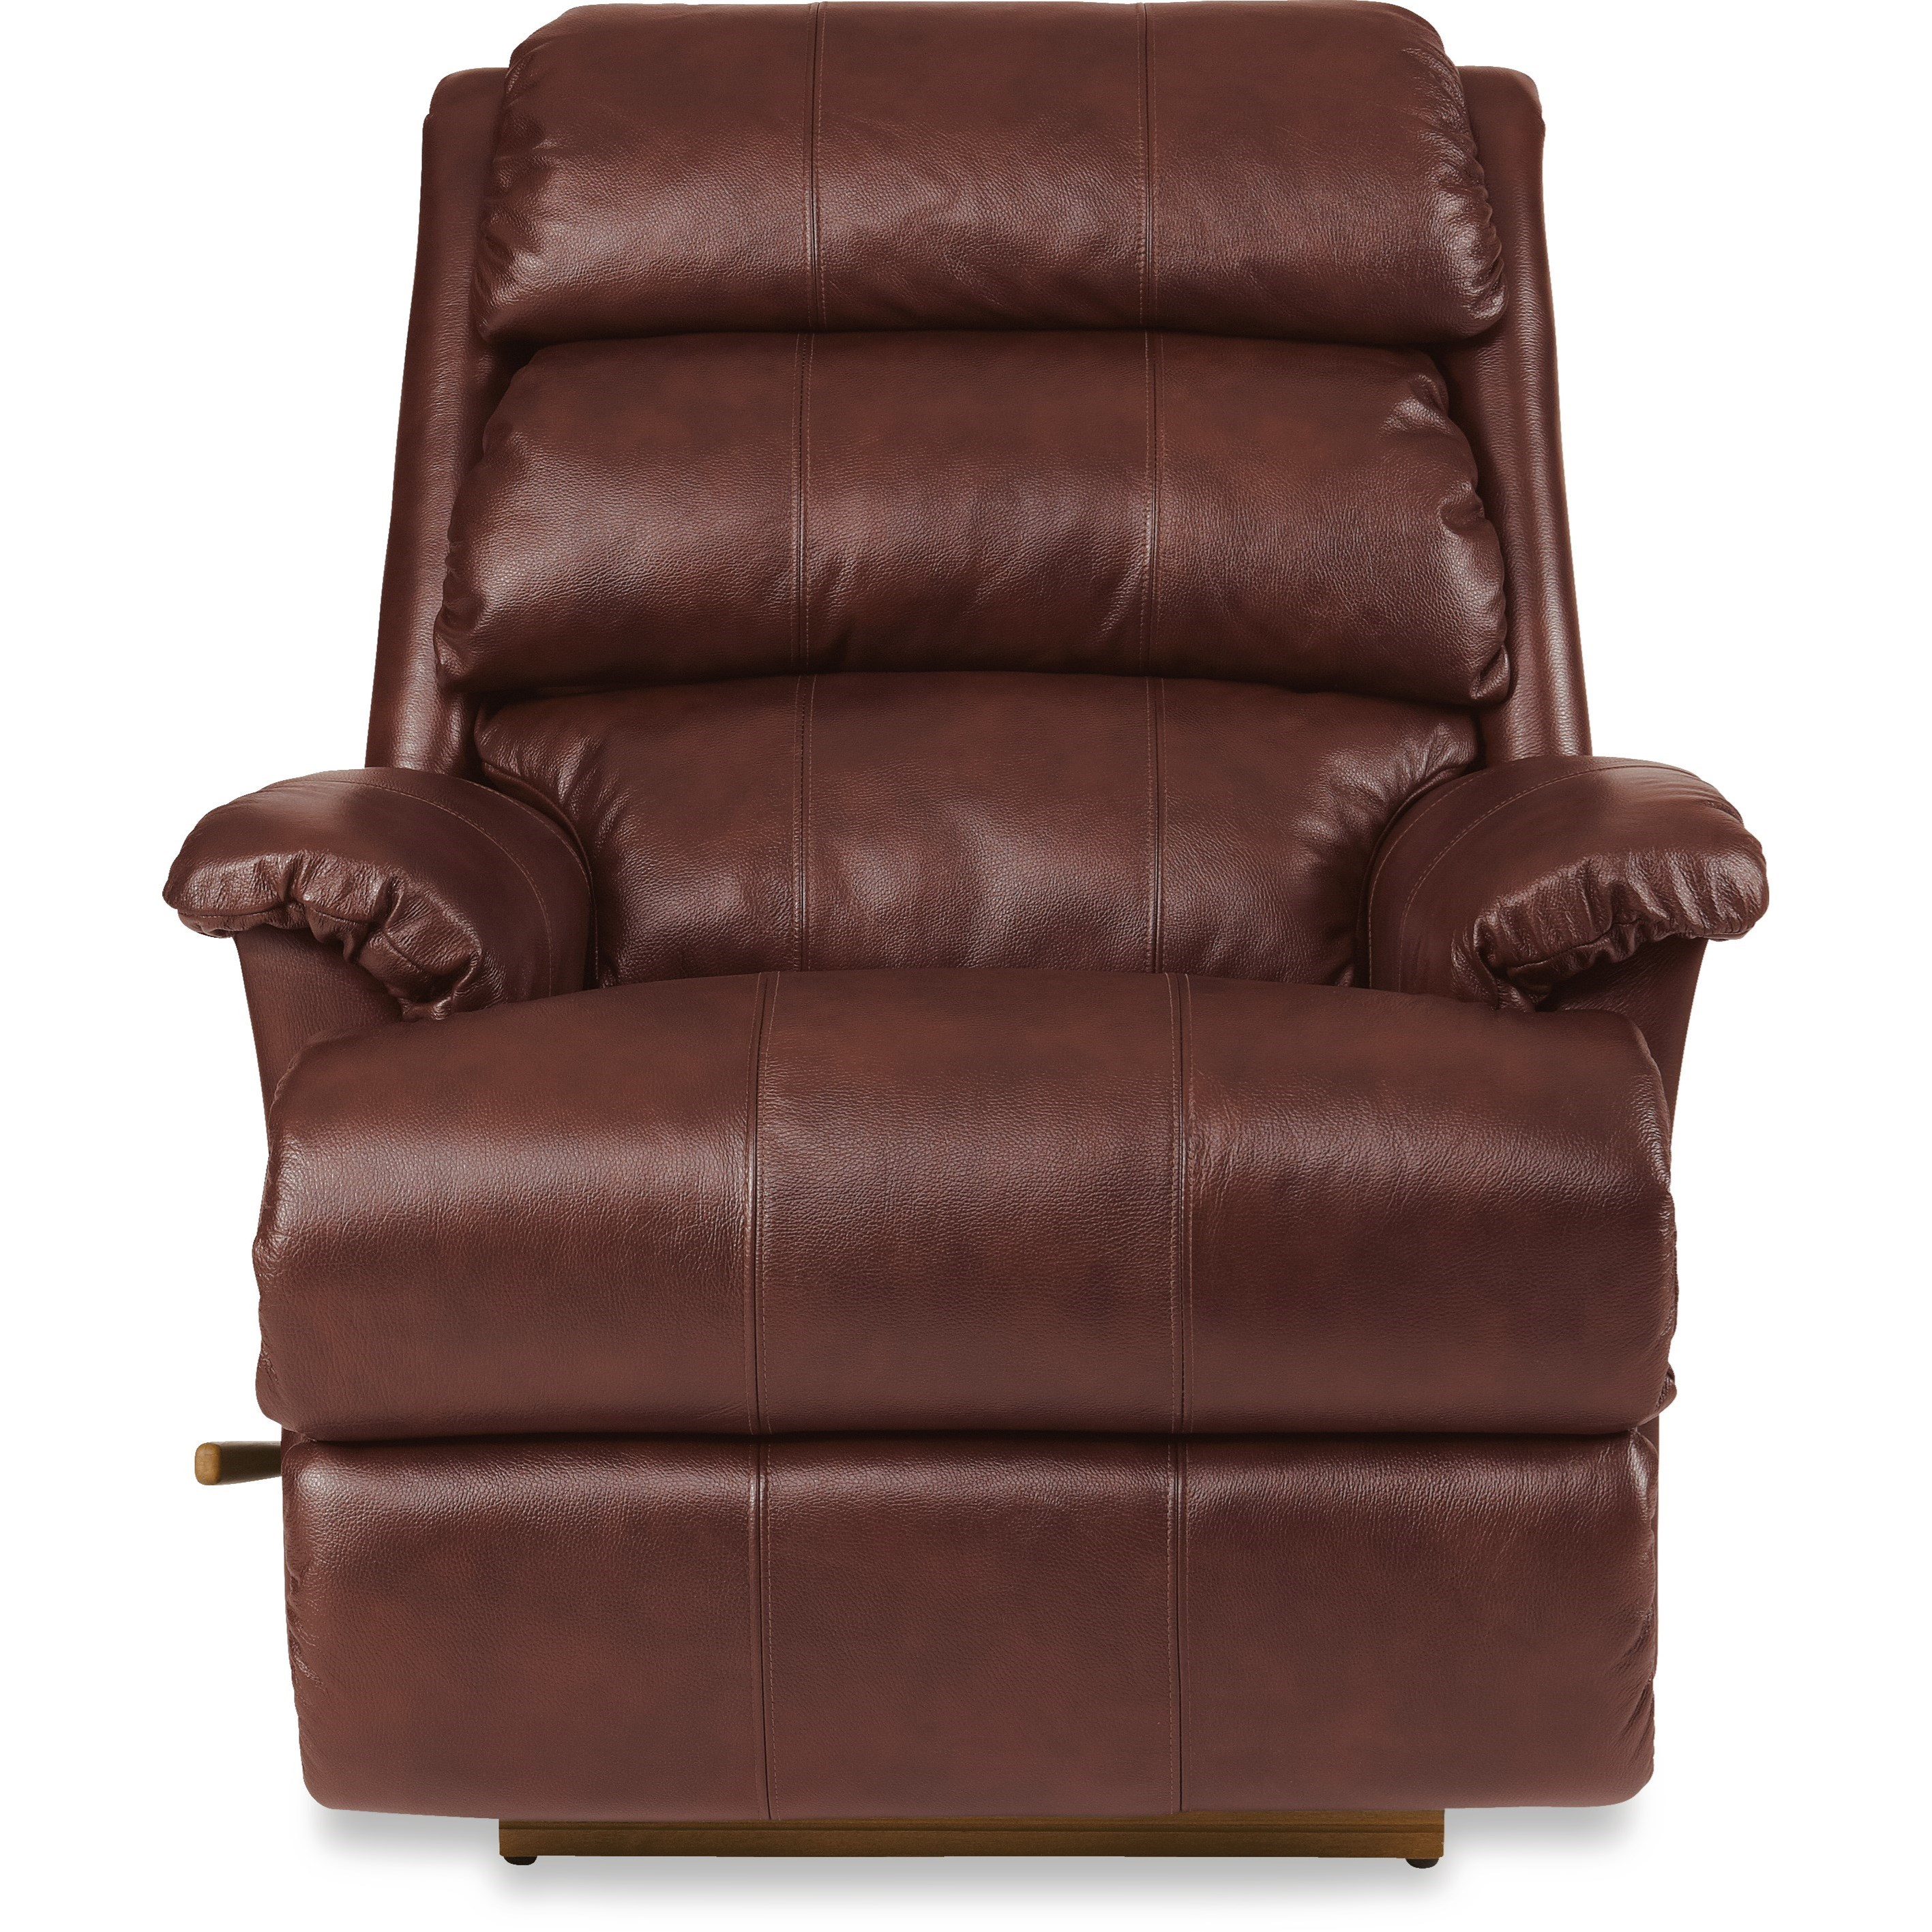 Astor RECLINA-WAY® Wall Recliner by La-Z-Boy at Home Furnishings Direct